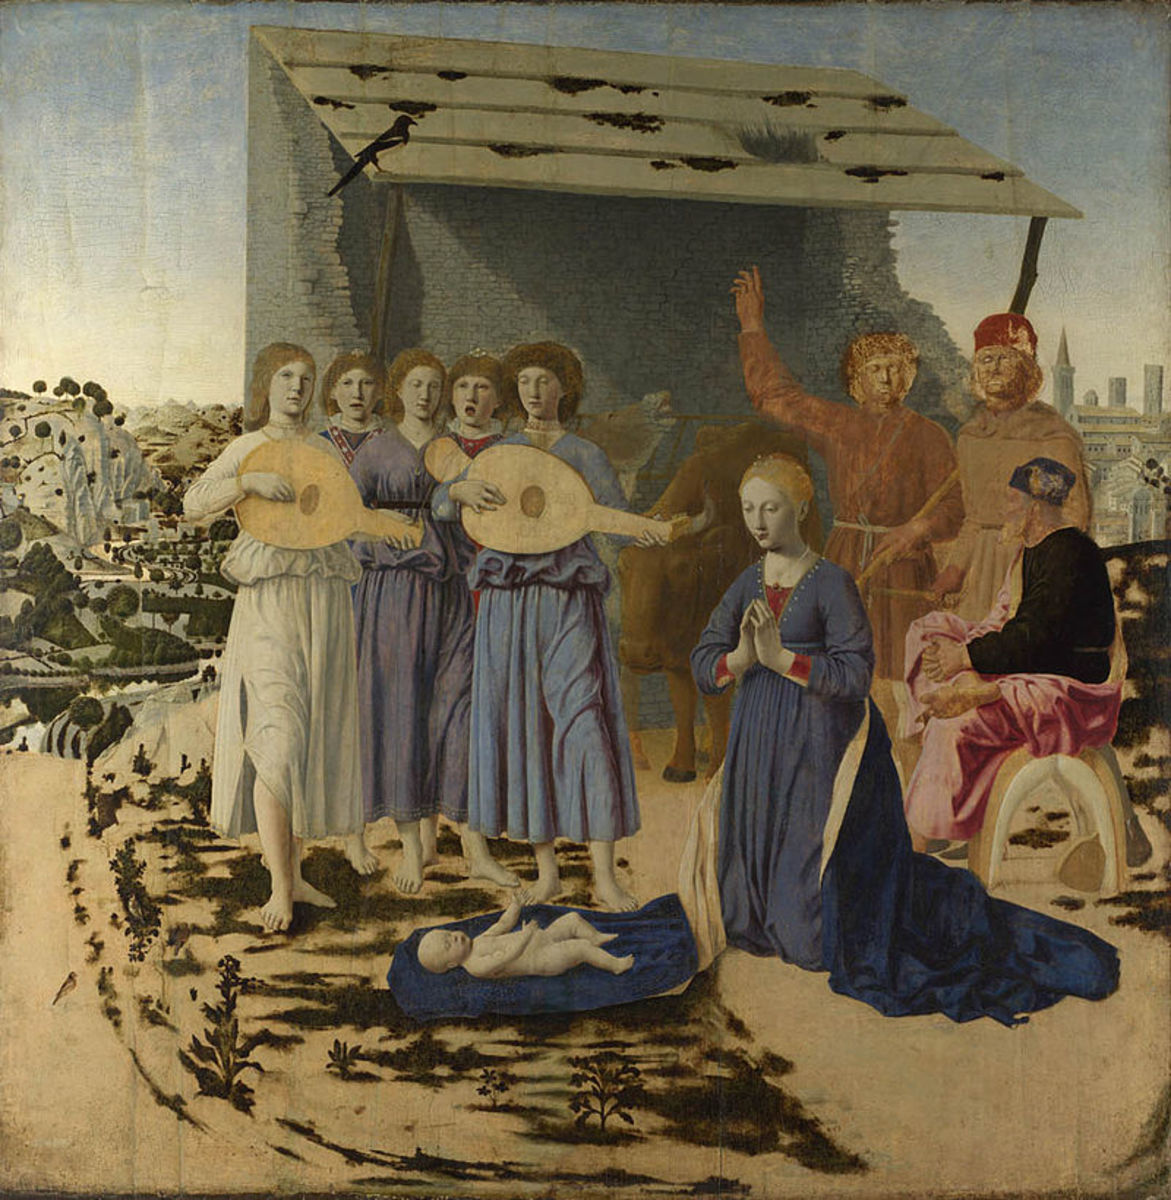 Piero della Francesca, Nativity (a. 1470), London National Gallery